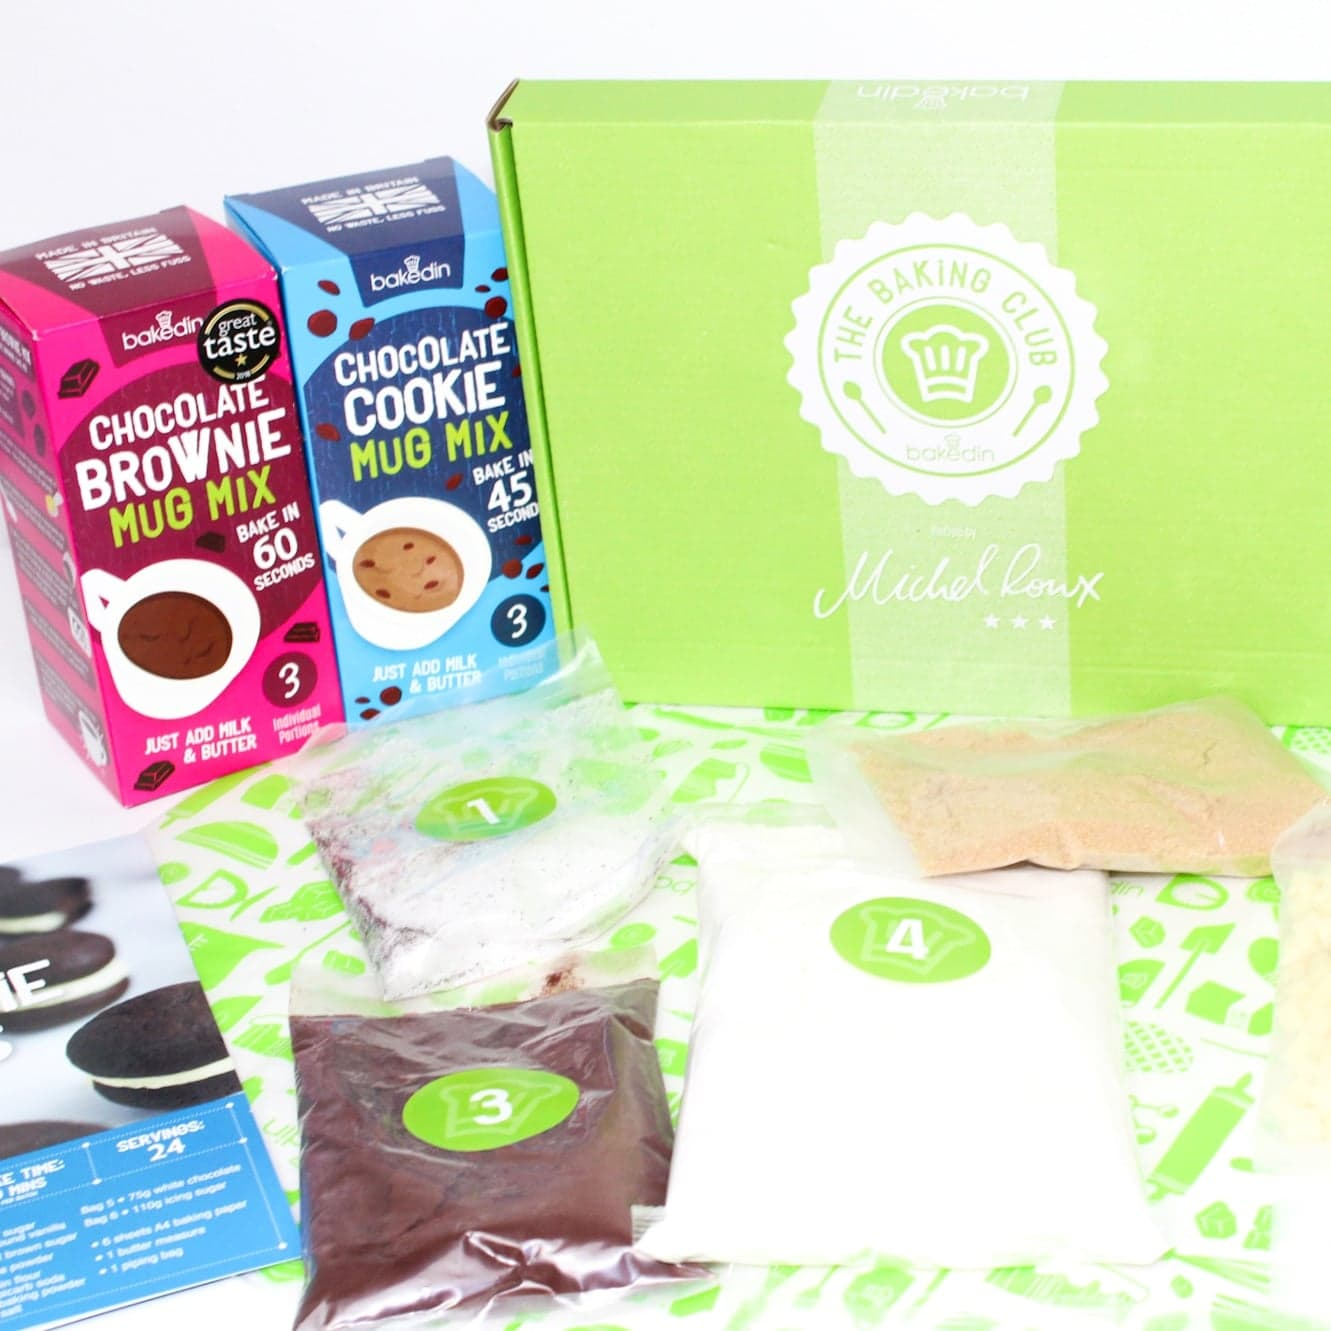 The Bakedin Baking Club | A Baking Subscription Box